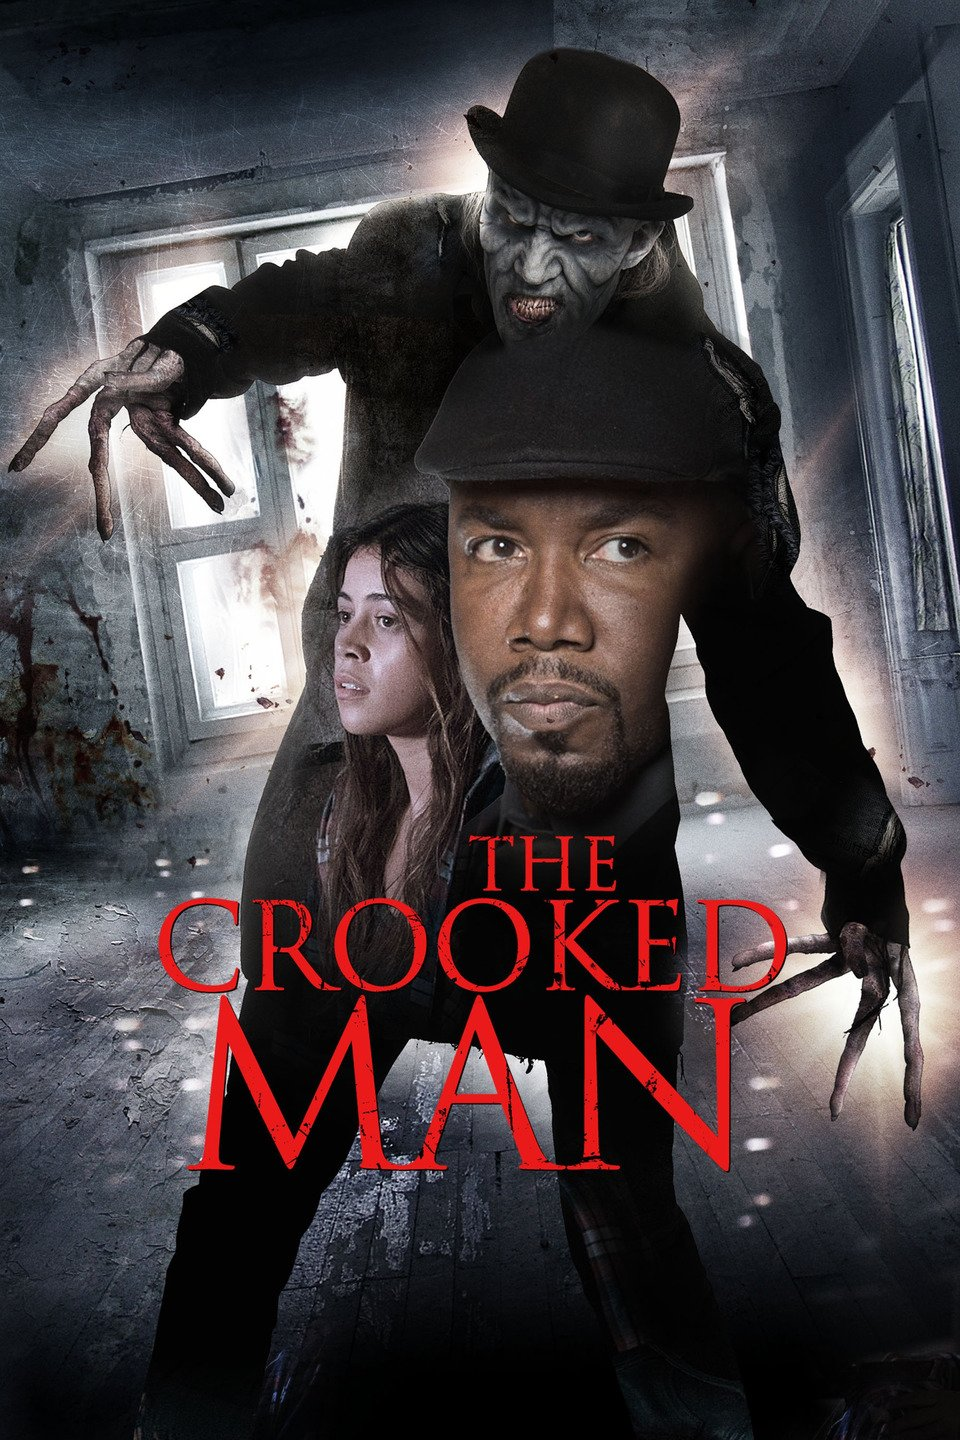 The Crooked Man-The Crooked Man